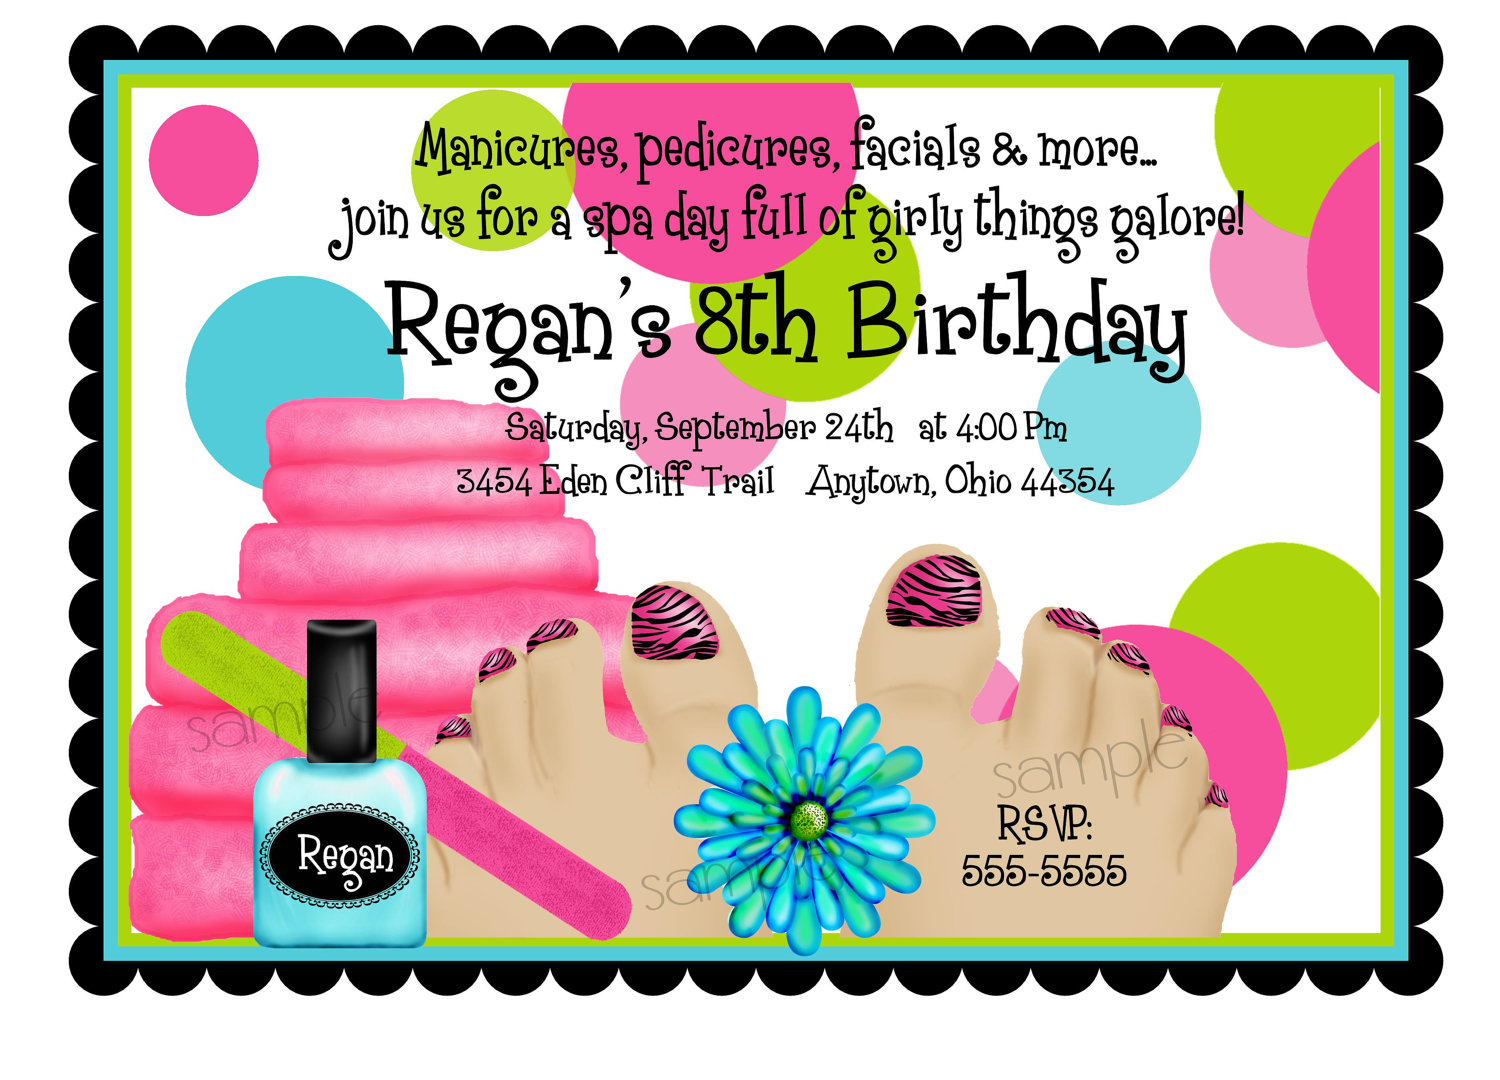 Slumber Party Invitation is awesome invitations design